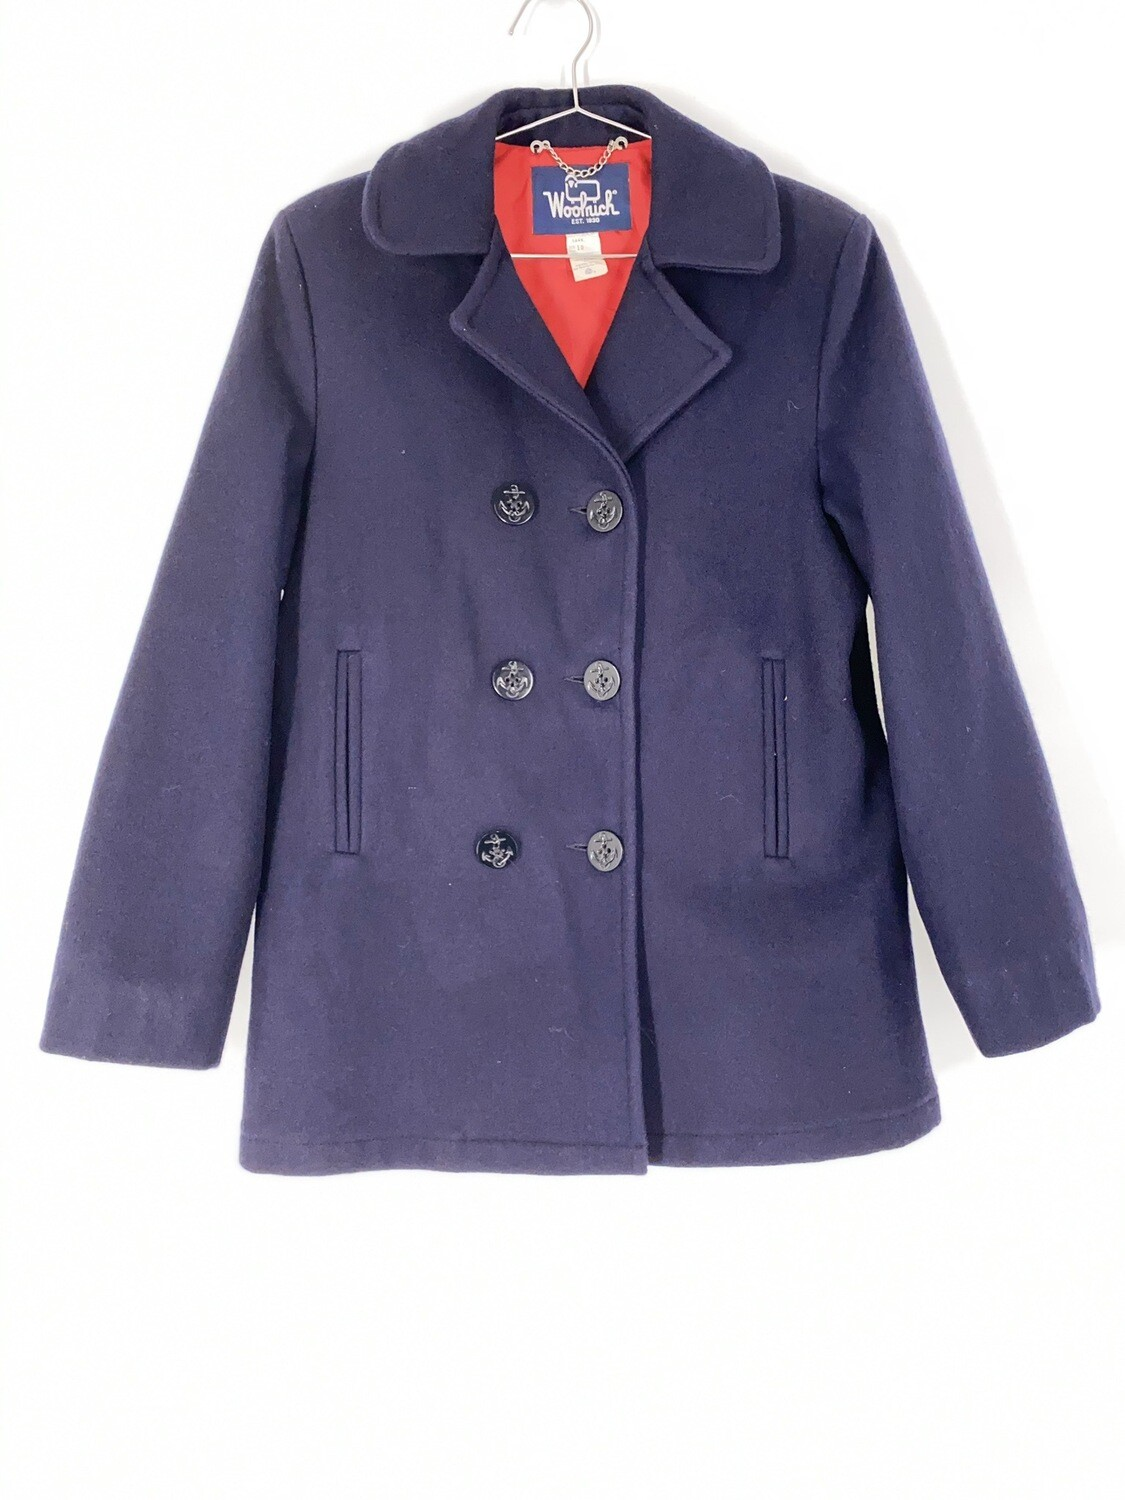 Woolrich Navy Blue Heavy Coat Size Medium